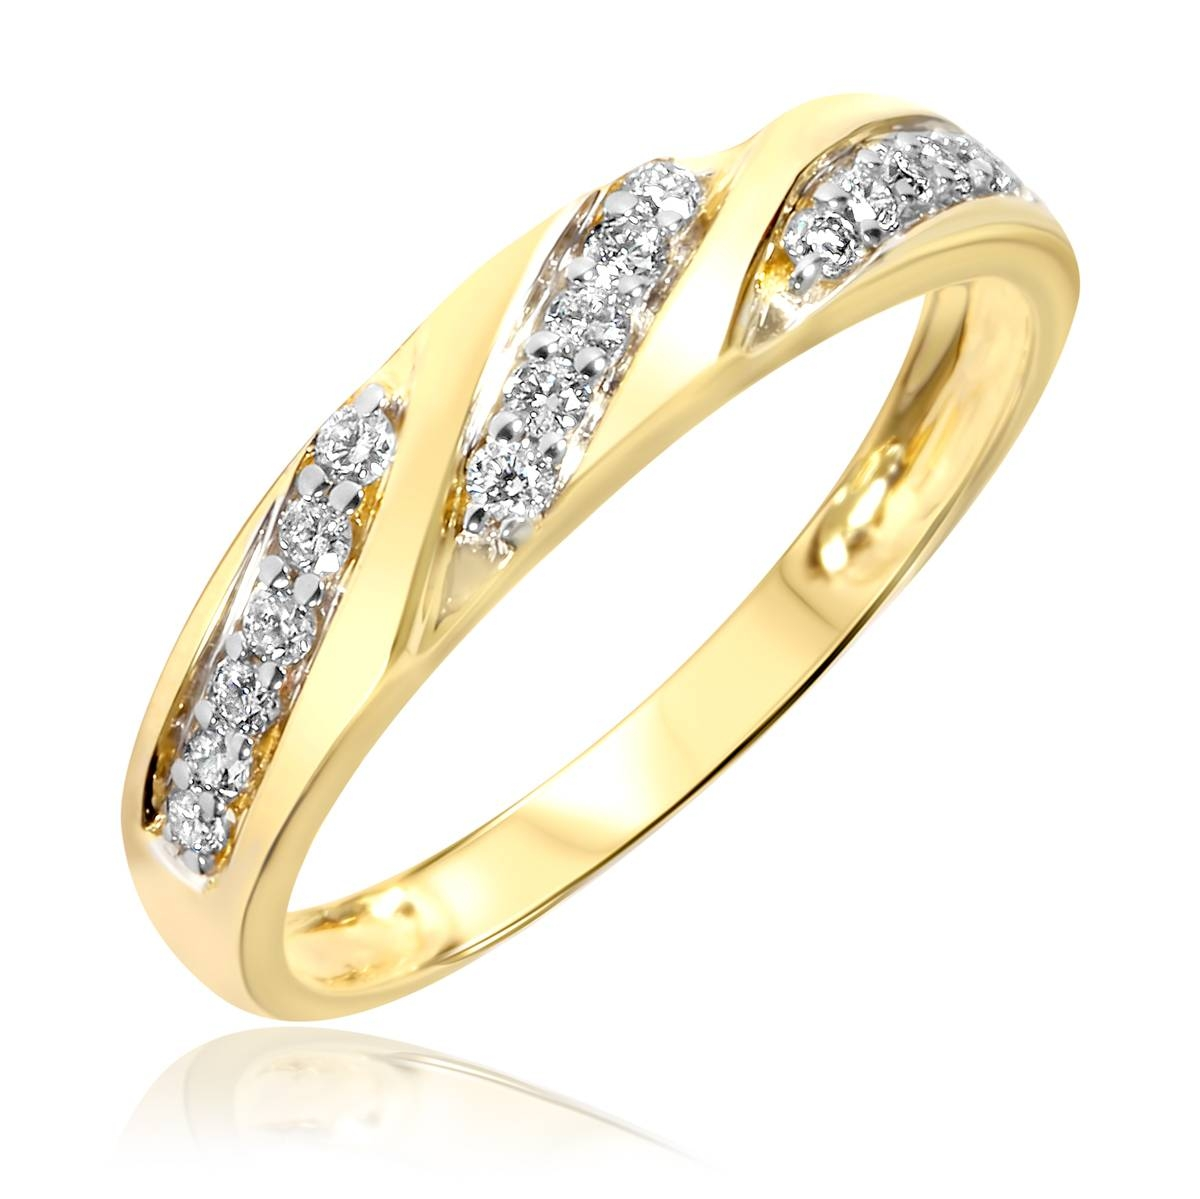 15 Collection of Gold Wedding Rings For Women